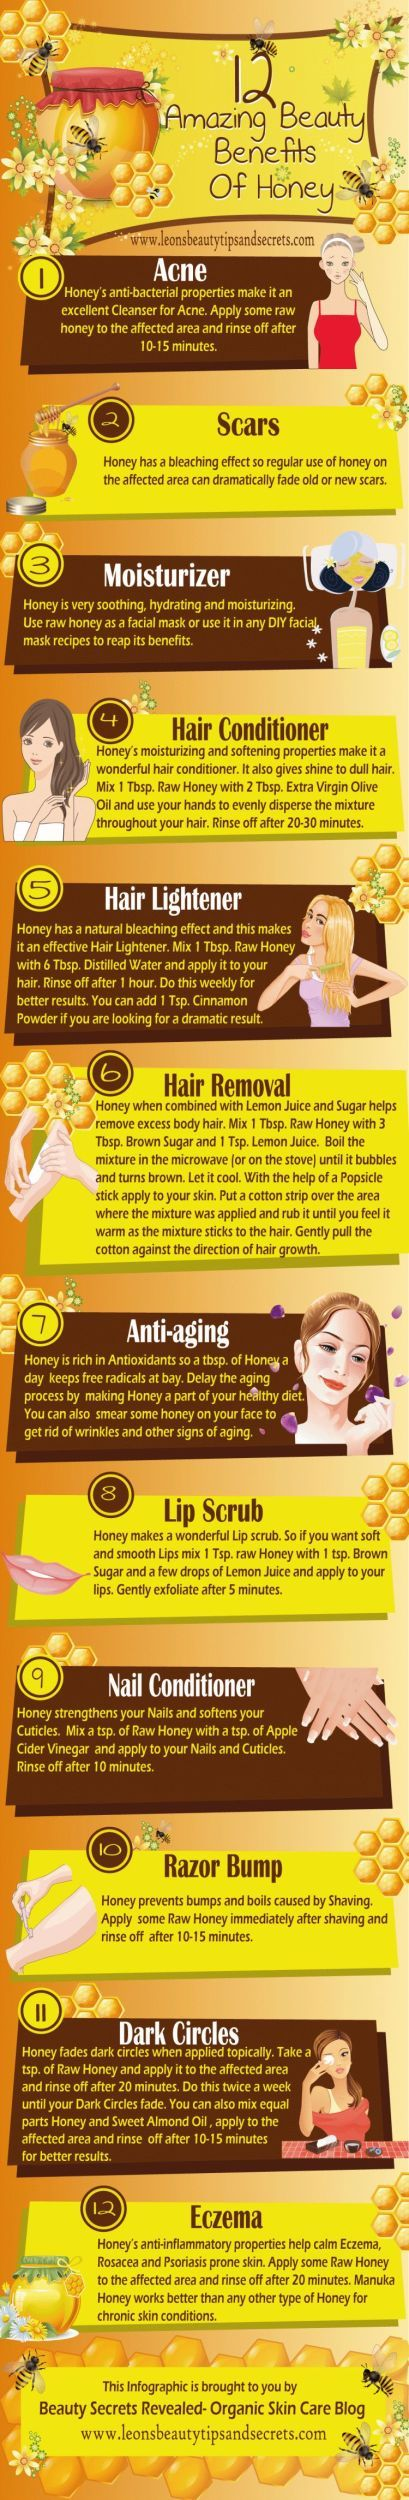 12 Amazing Beauty Benefits Of Honey Infographic for Acne, scars, moisturizer, hair conditioner & lightener, anti-aging, lip & nail conditioner, dark circles & eczema. #Gawjus #DIY #LifeHacks #GreatSkin #BeWell #BeYOUtiful #BeautyTips